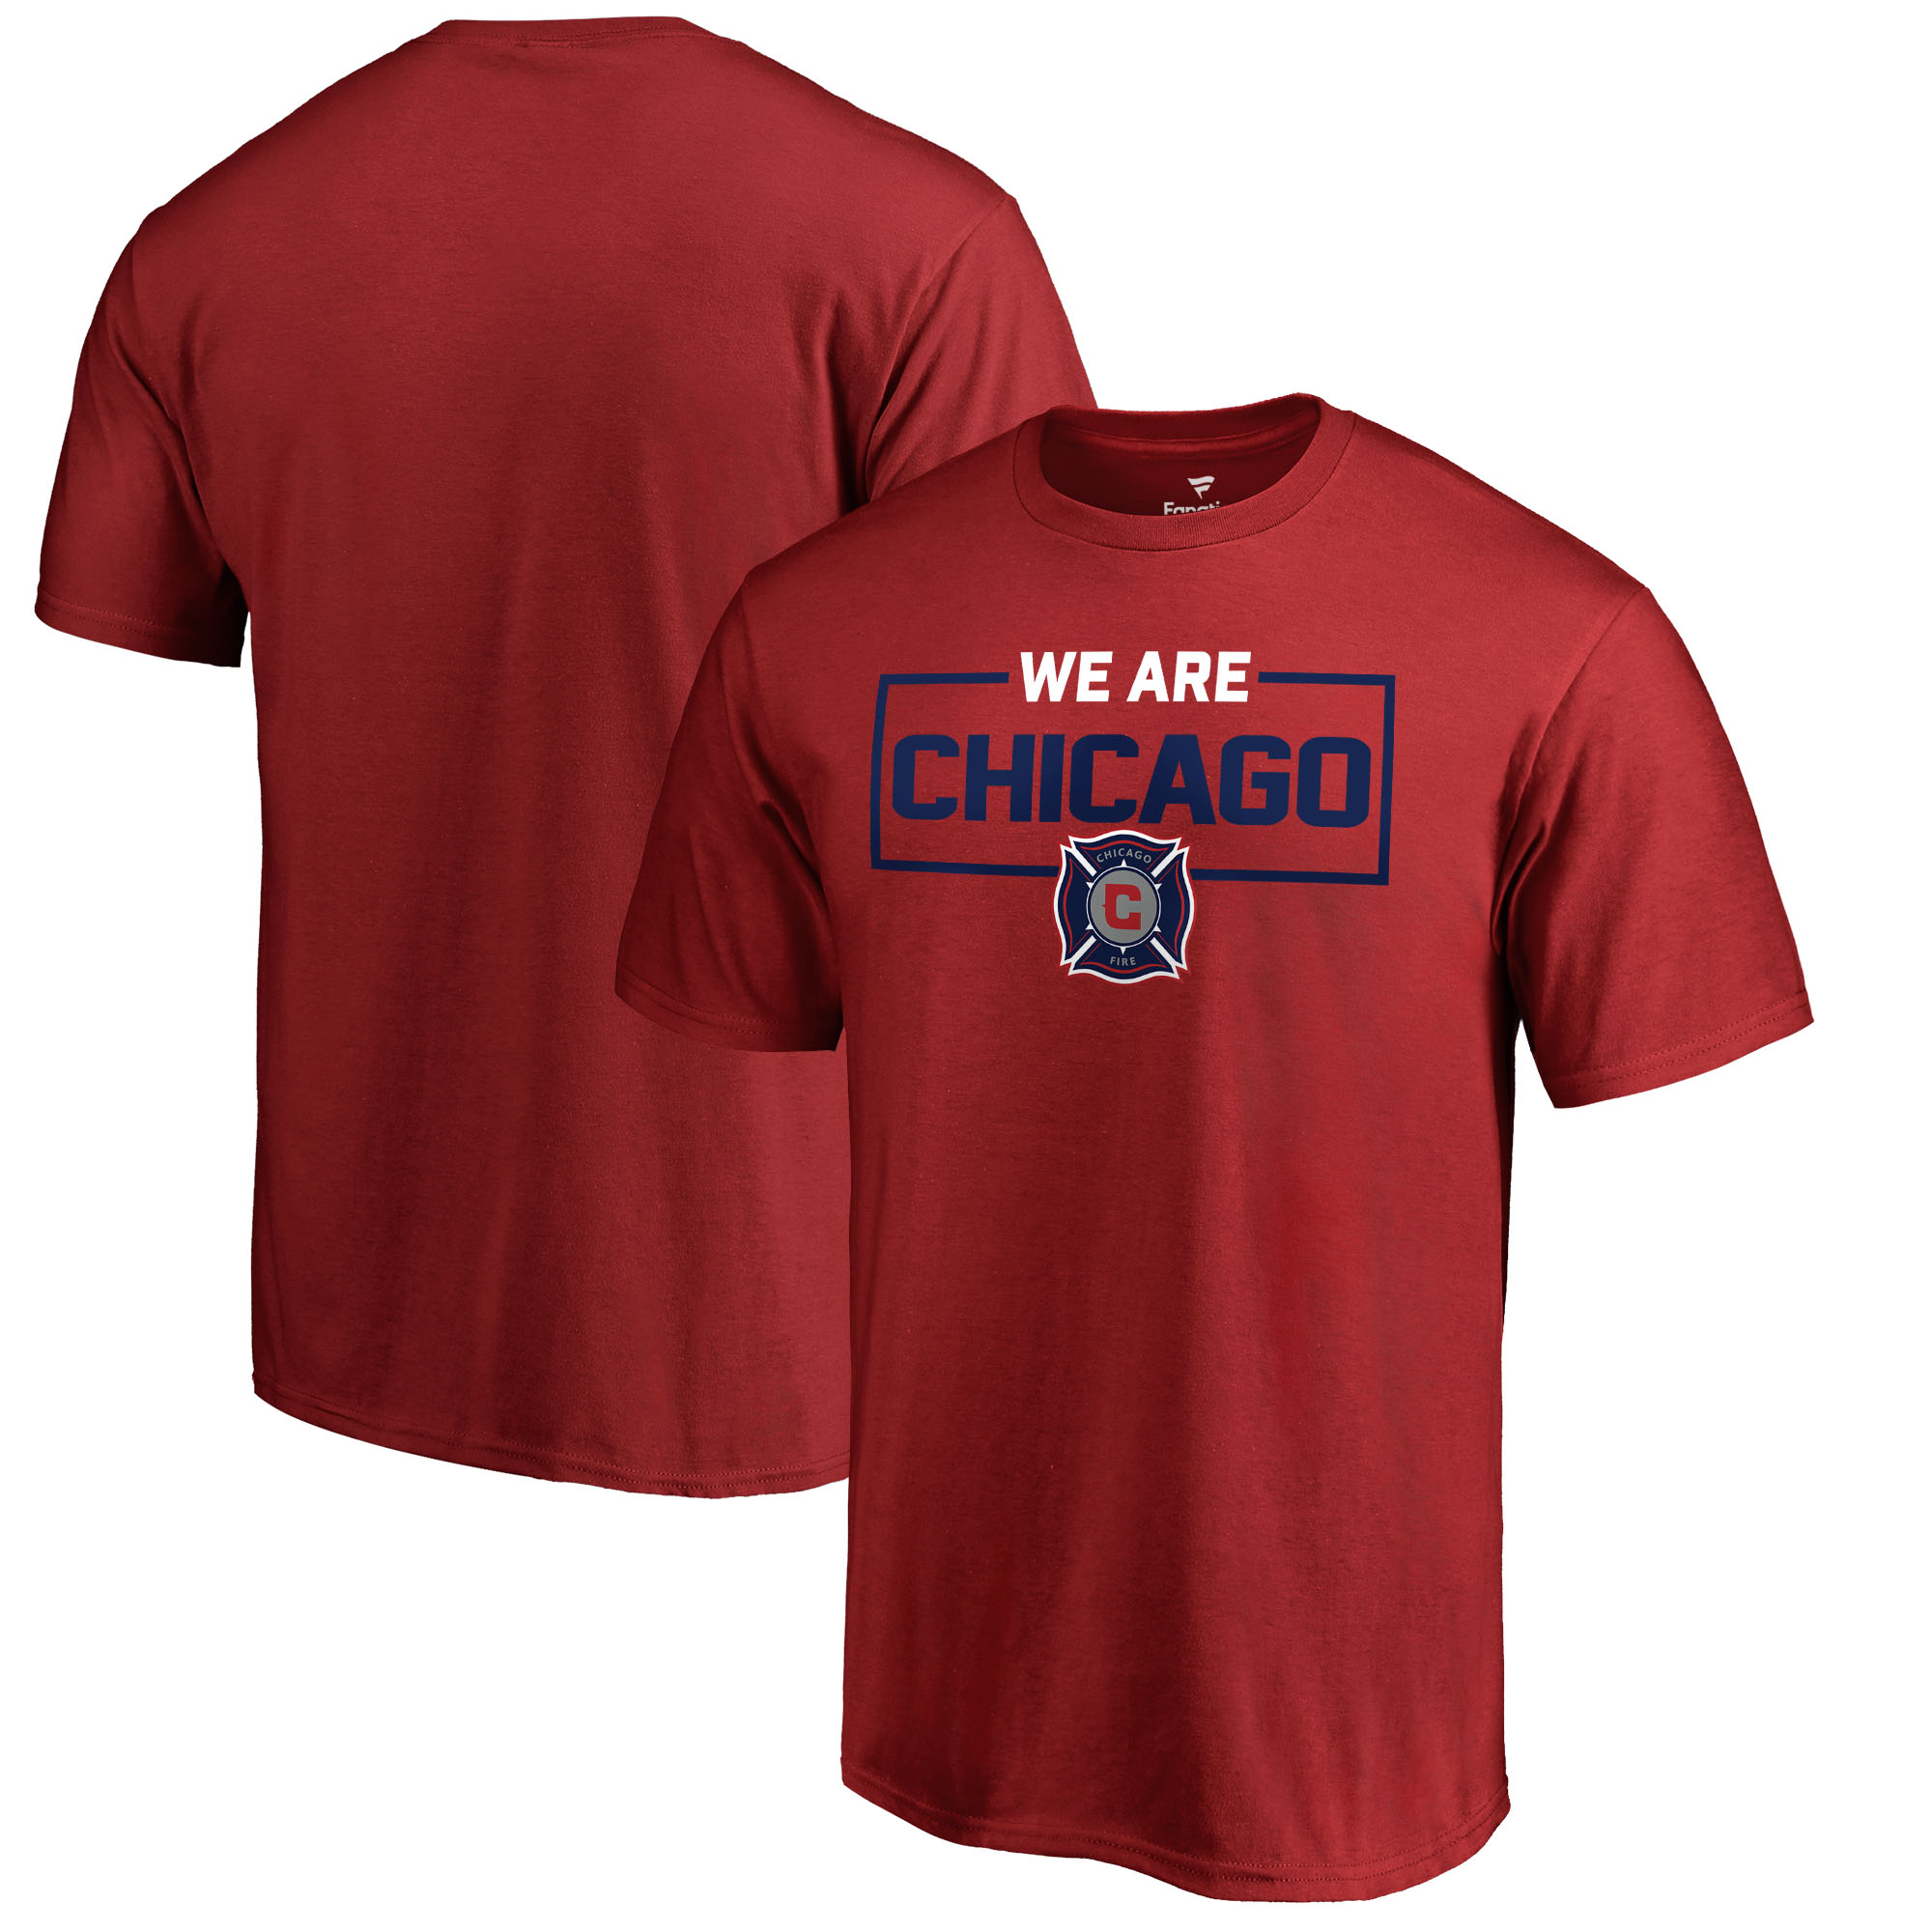 Chicago Fire Fanatics Branded We Are T-Shirt - Red